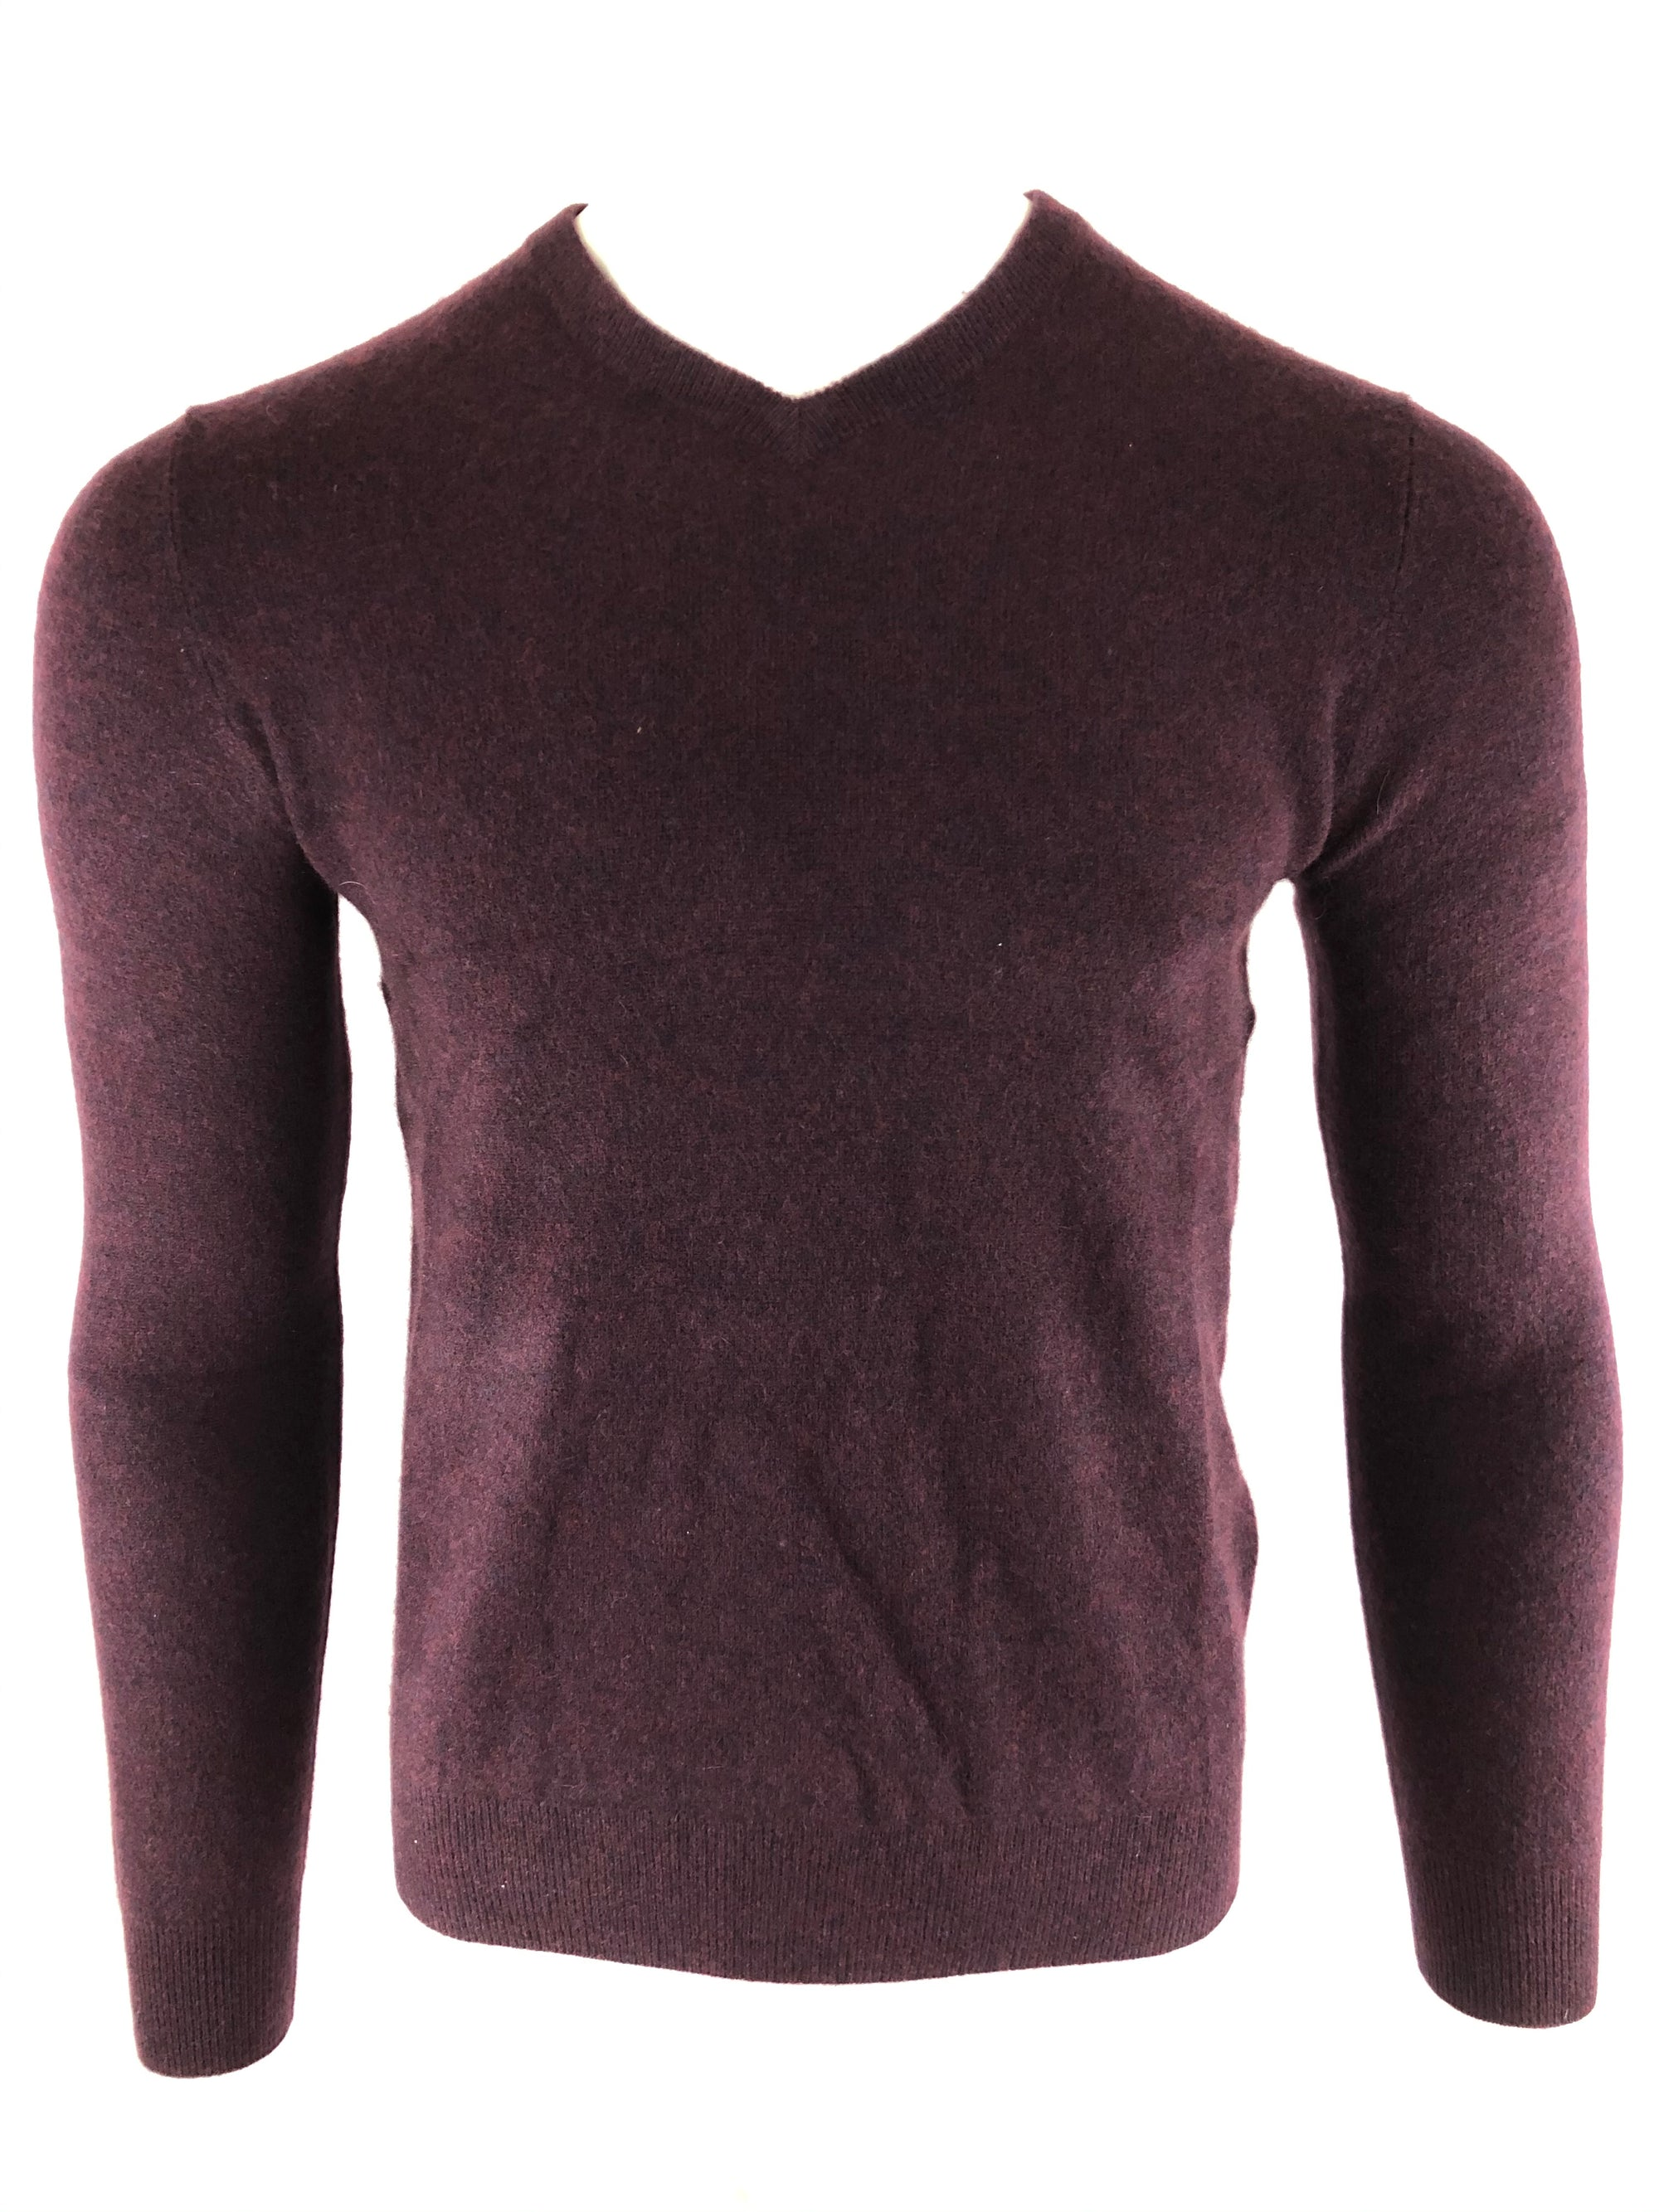 BUTTON DOWN MEN'S CASHMERE V-NECK SWEATER - AUBERGINE